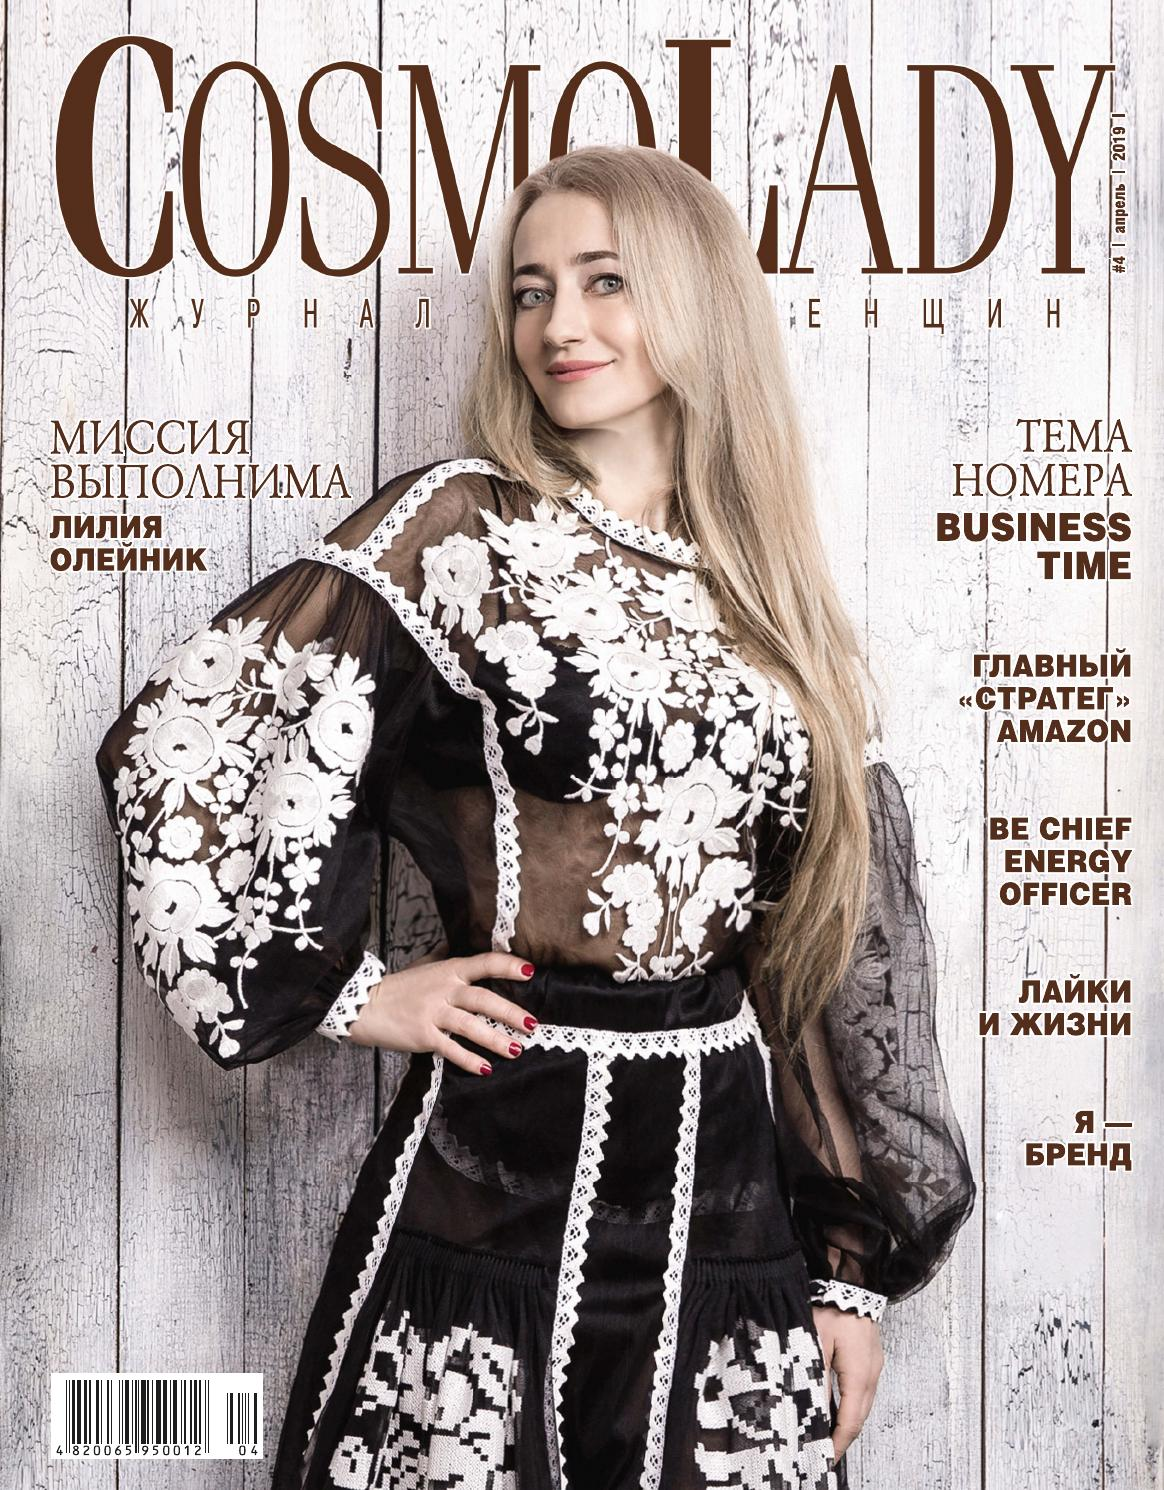 570127d508909 Cosmo Lady 042019 by cosmolady - issuu